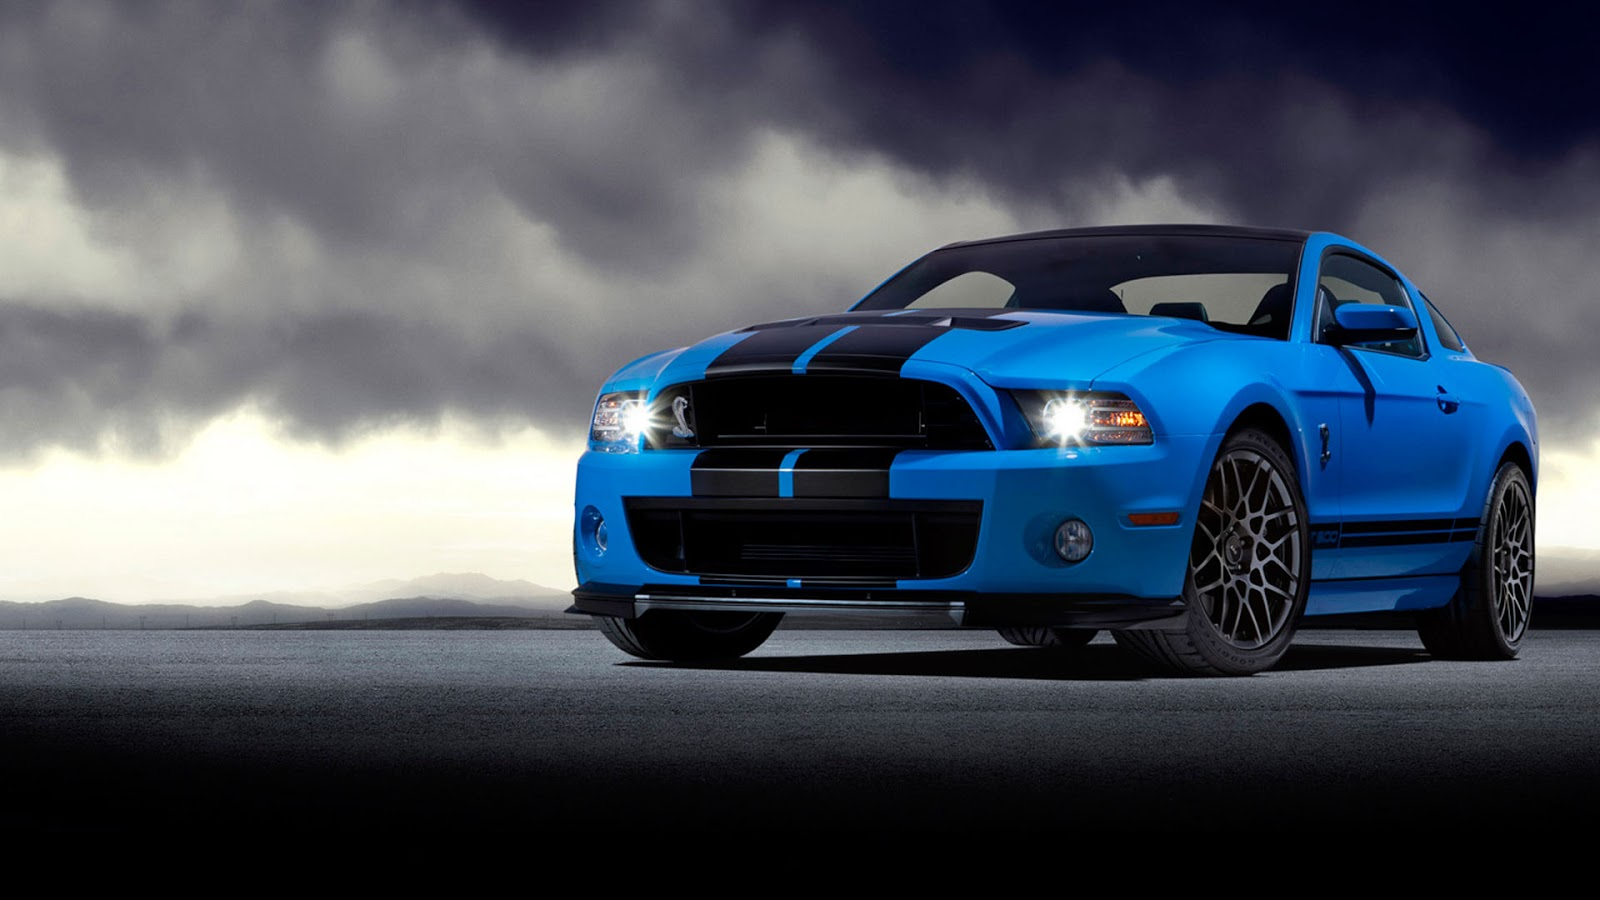 HD Wallpapers | Desktop Wallpapers 1080p: Ford Shelby ...